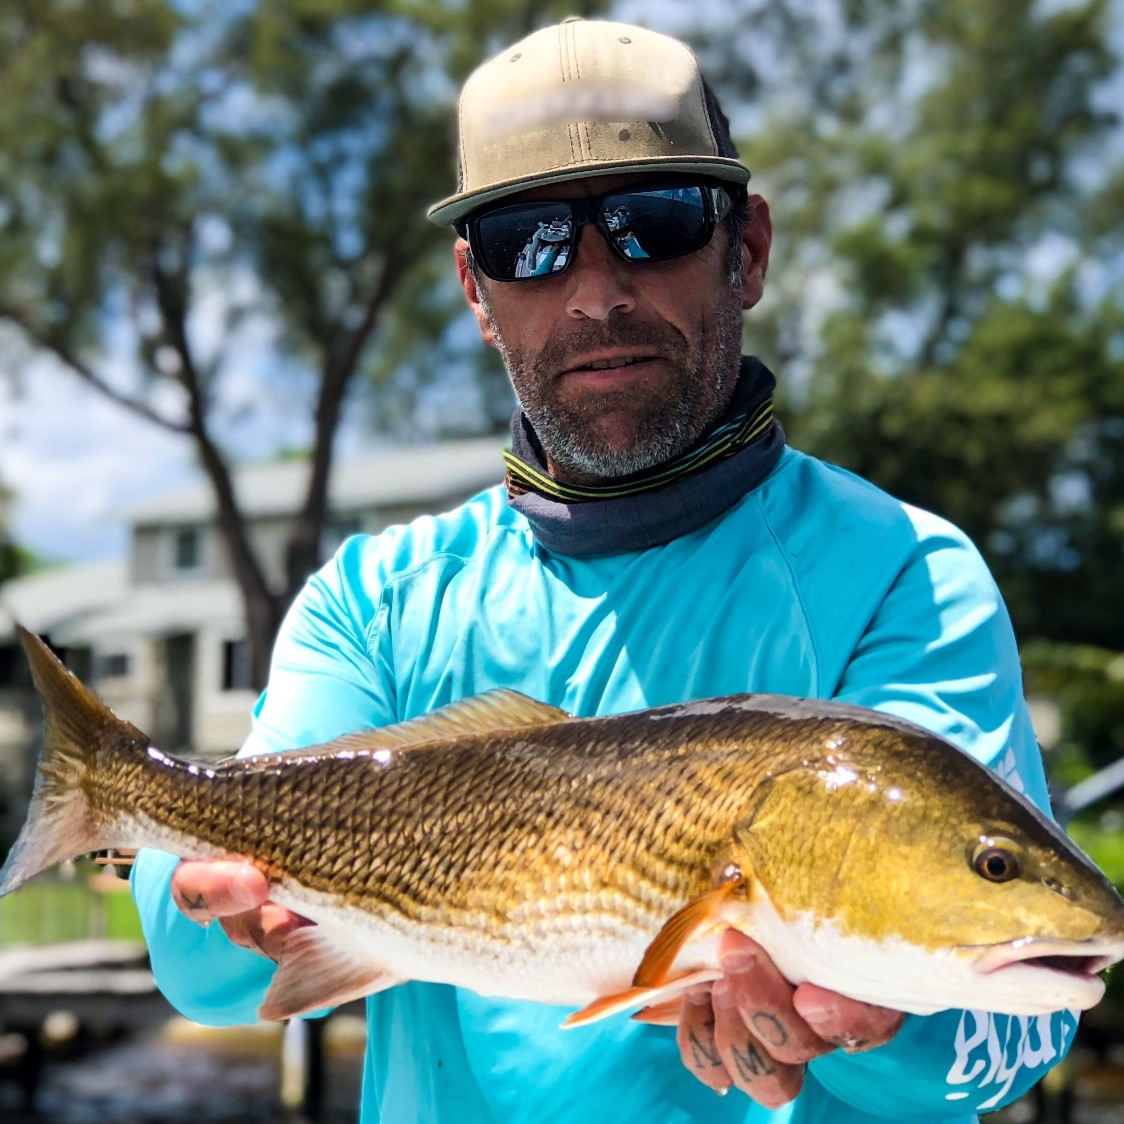 a picture of a fisherman holding a redfish